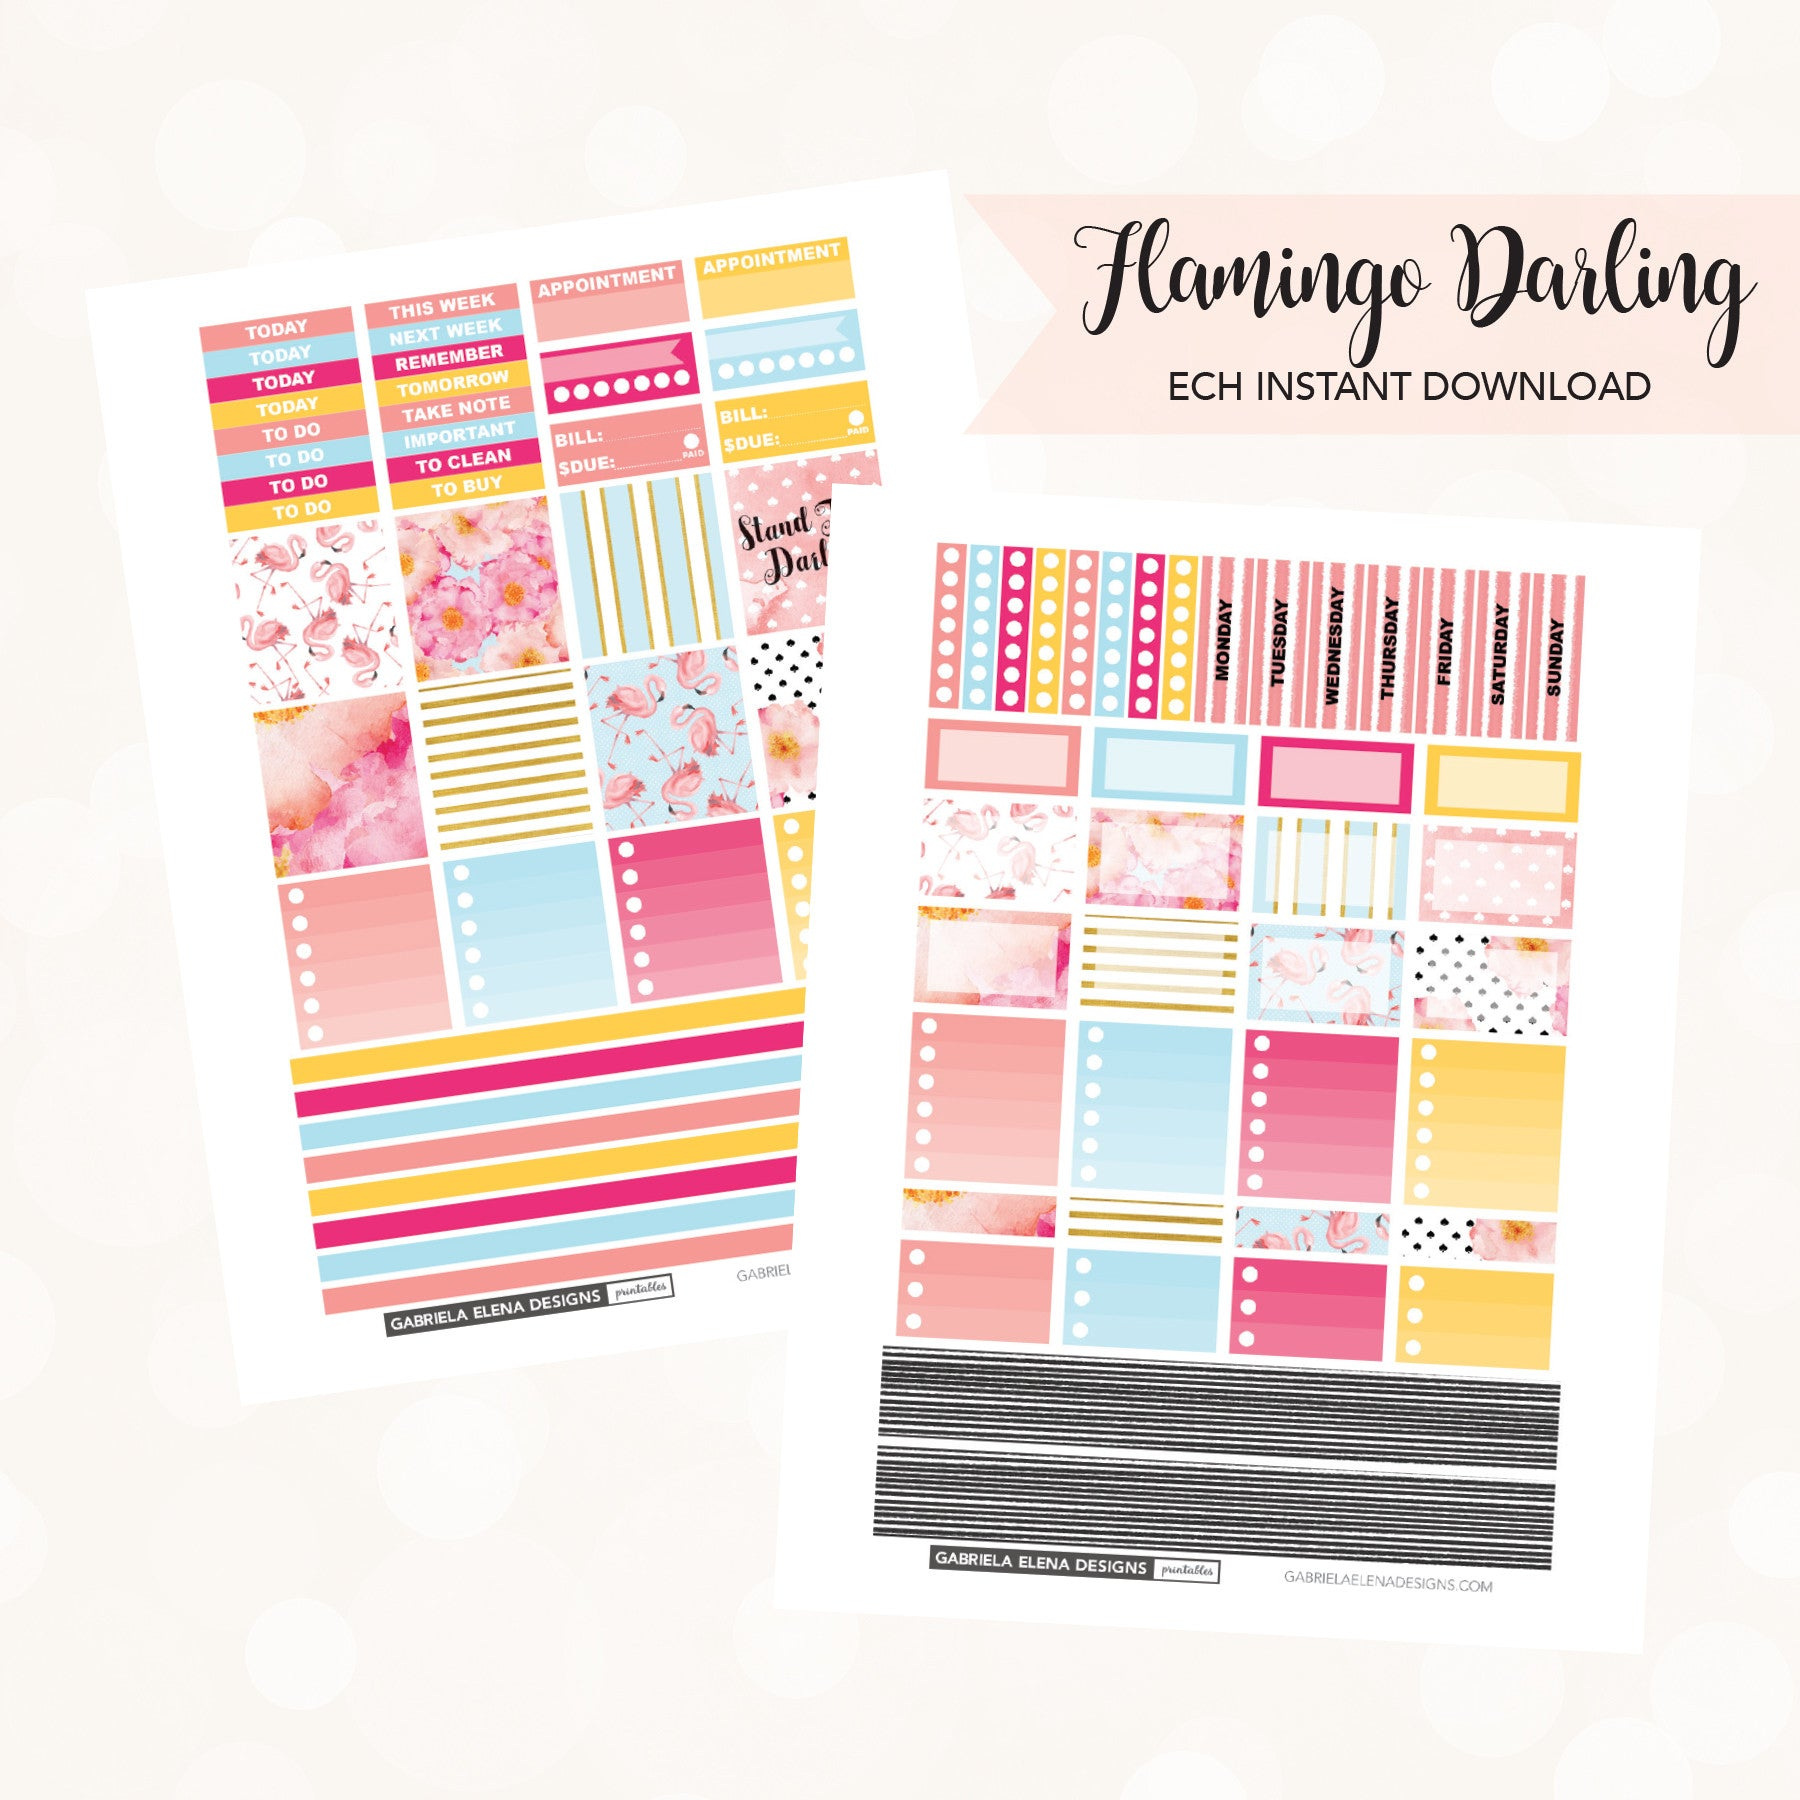 HORIZONTAL Printable / Instant Download / Flamingo Darling